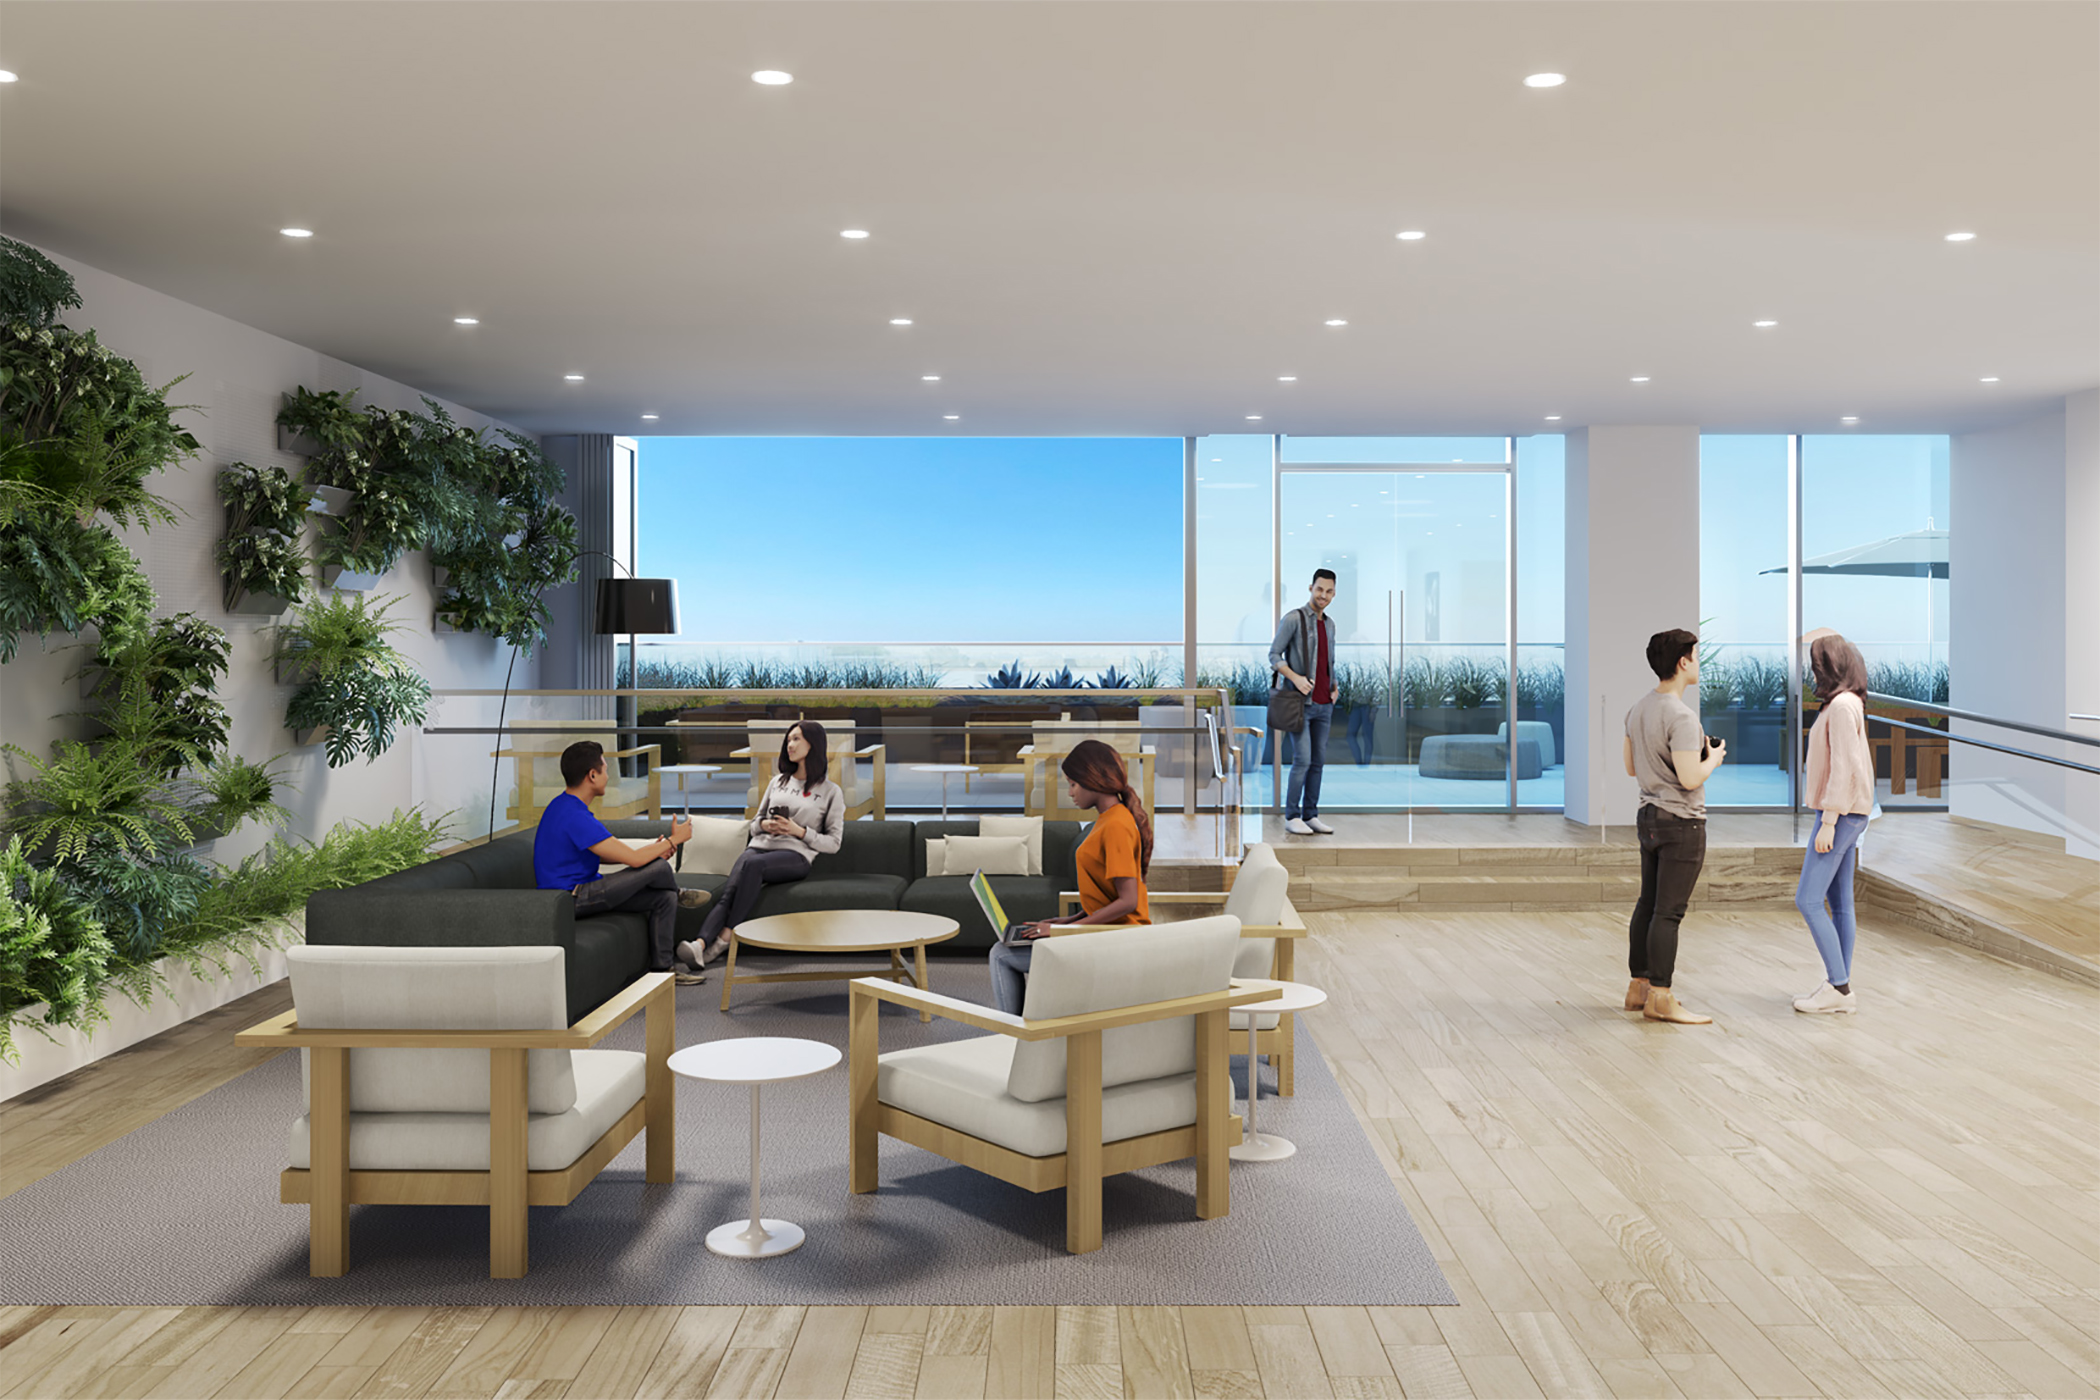 Apple plans to eventually employ more than 5,000 workers in San Diego, where it has already leased more than 650,000 square feet of offices. (Apple)